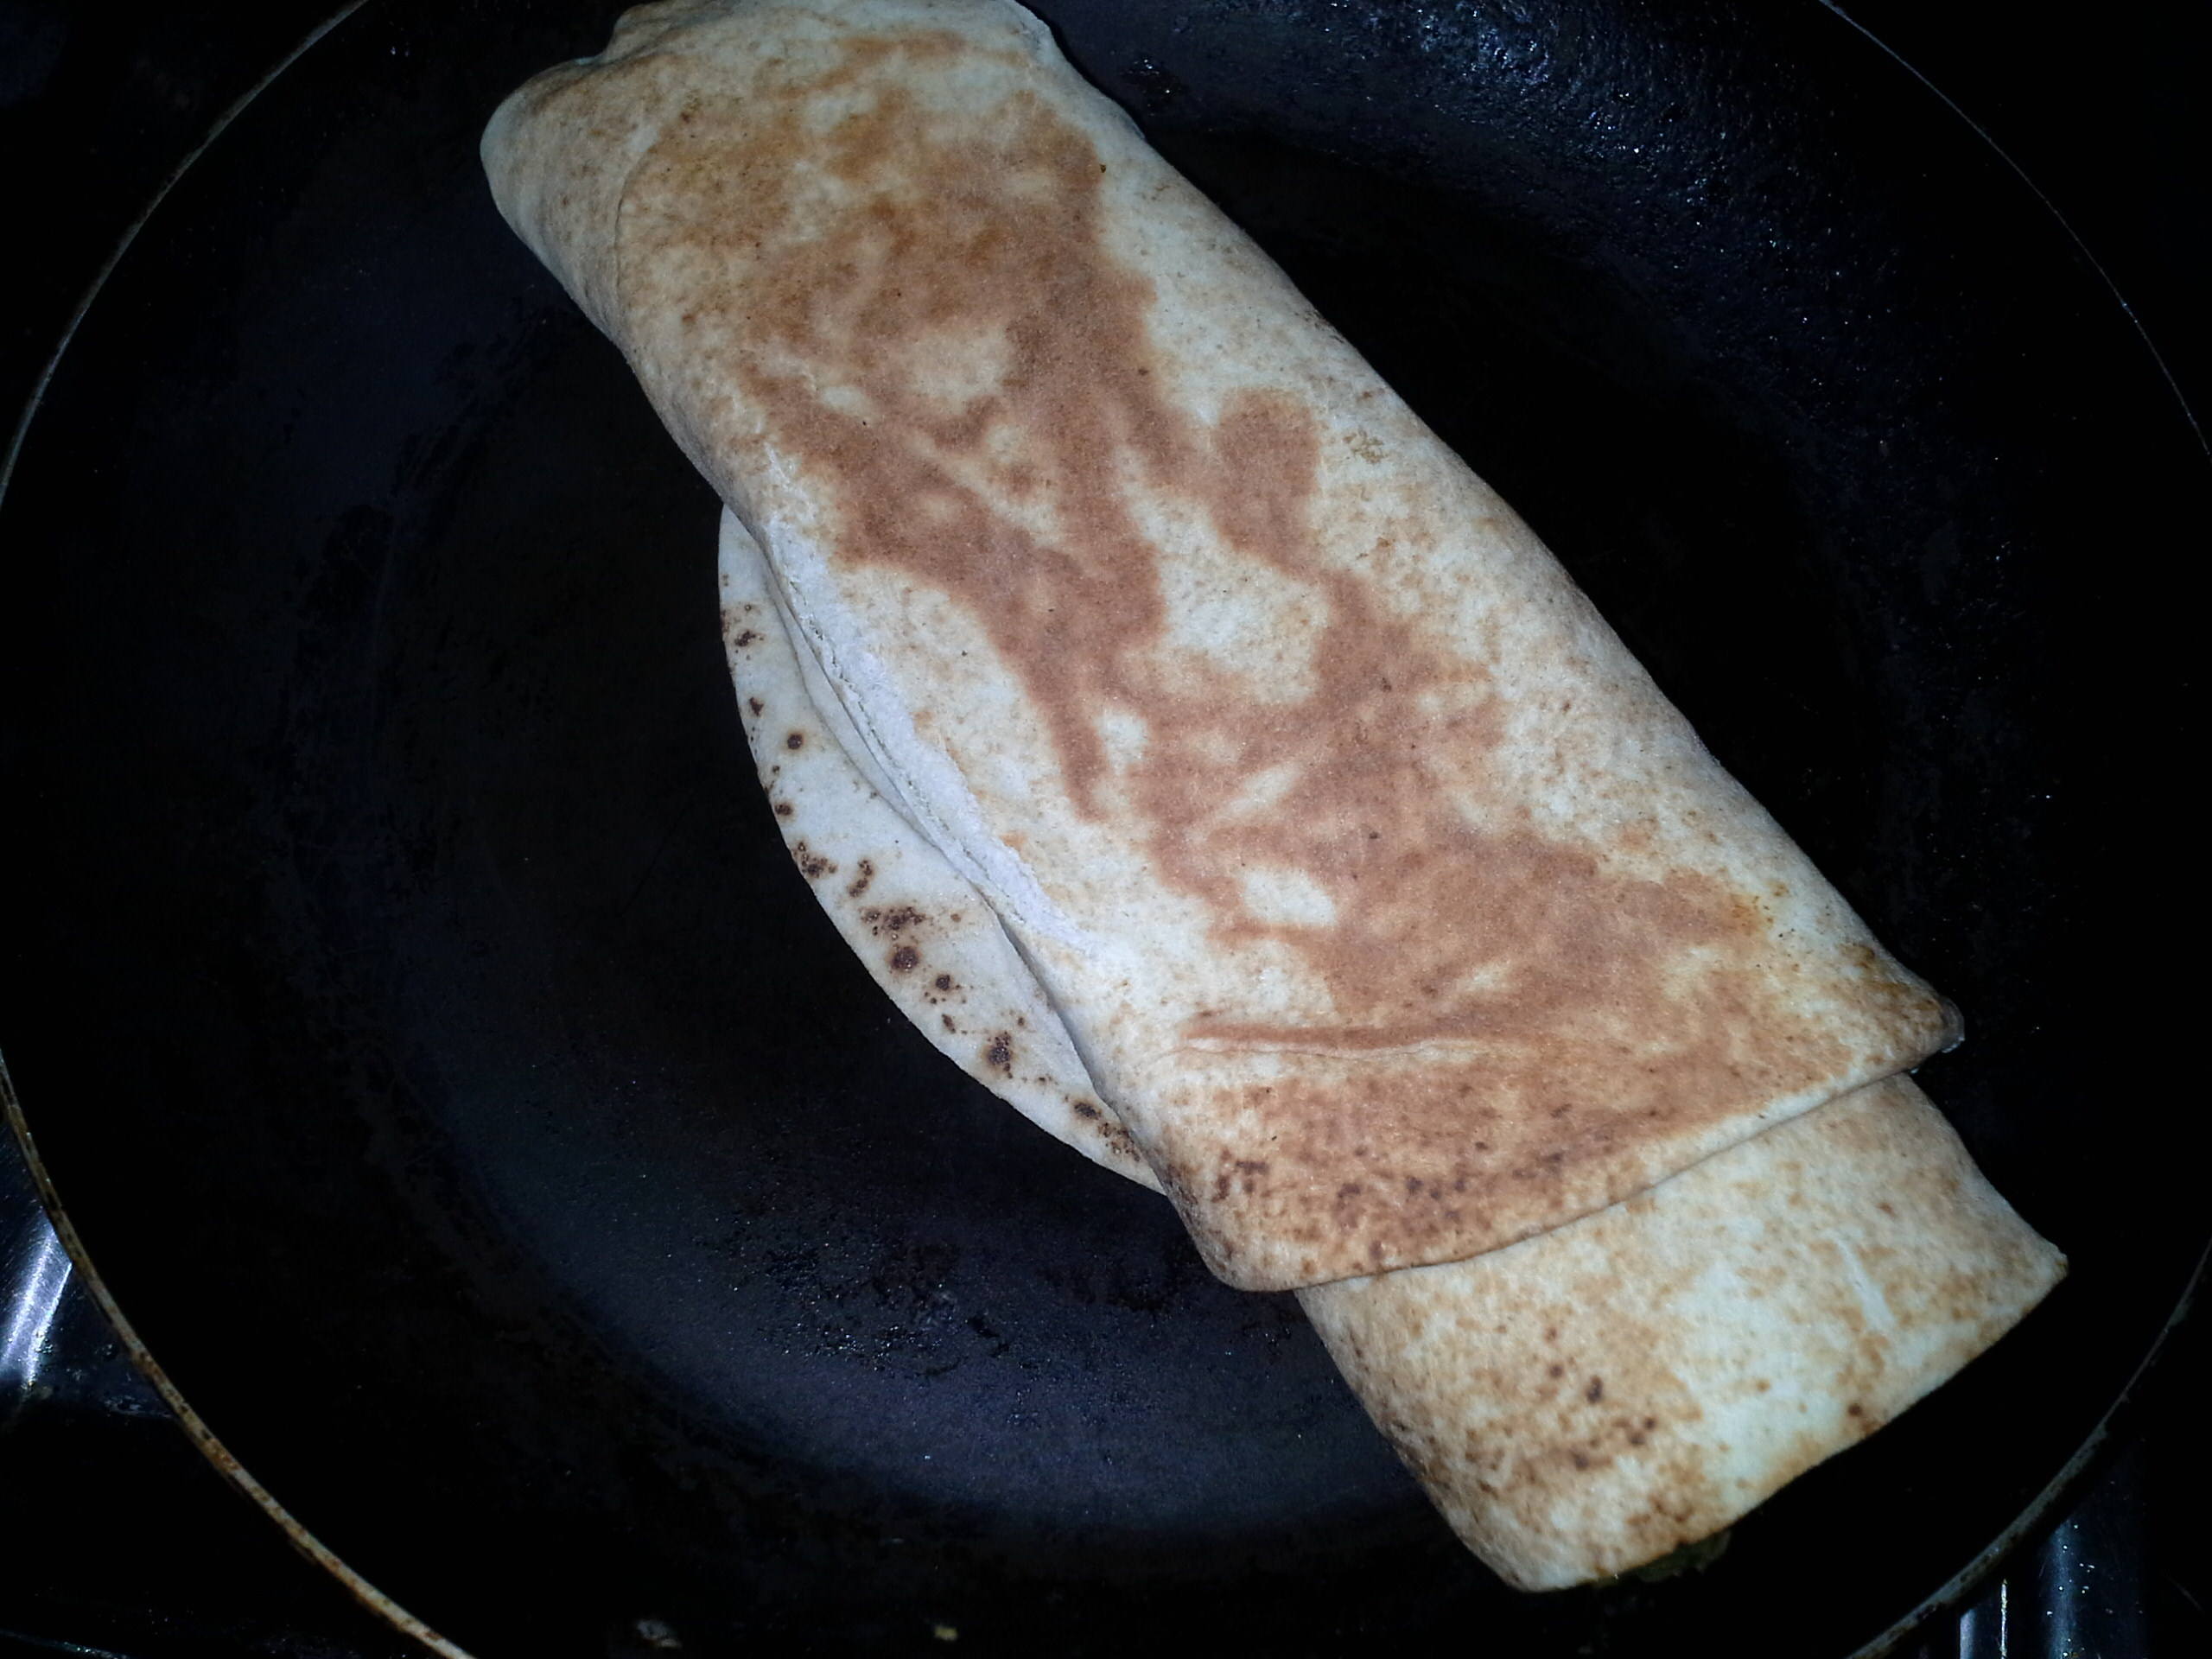 Roll it up and fry in a non-stick pan over low heat till both sides are golden brown